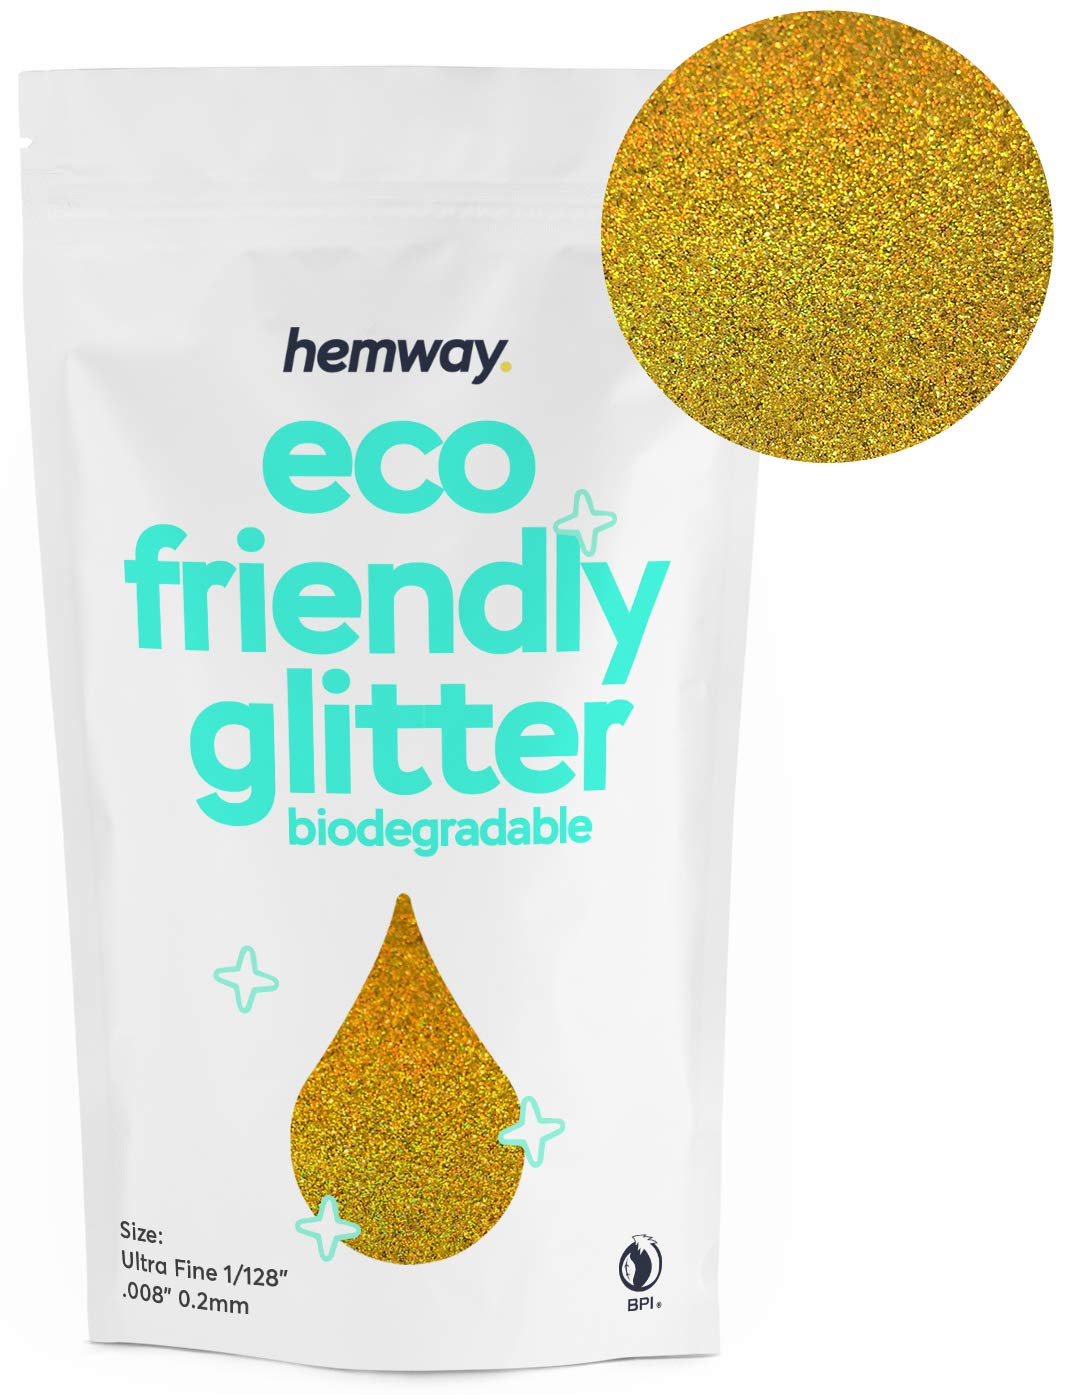 """Hemway Eco Friendly Biodegradable Glitter 100g / 3.5oz Bio Cosmetic Safe Sparkle Vegan for Face, Eyeshadow, Body, Hair, Nail and Festival Makeup, Craft - 1/128"""" 0.008"""" 0.2mm - Gold Holographic"""